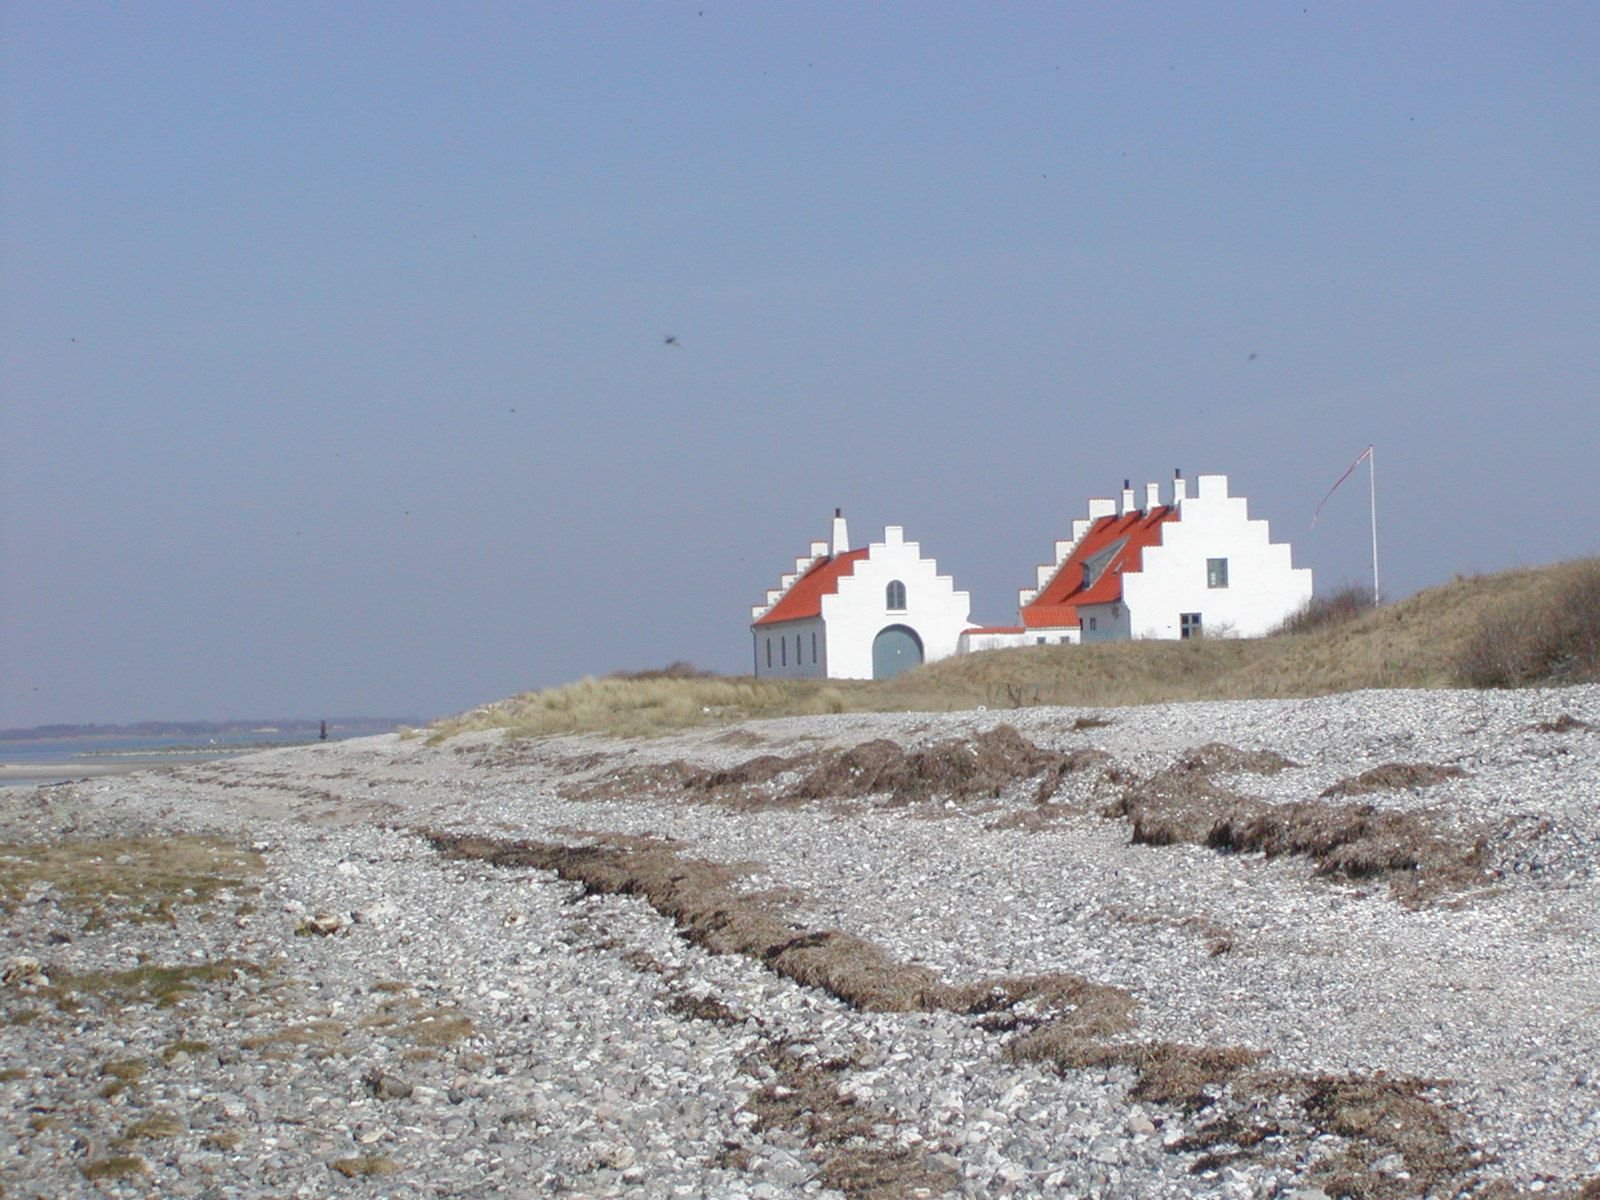 ★★★★ I took this photo at the northern tip of Jutland in Denmark.